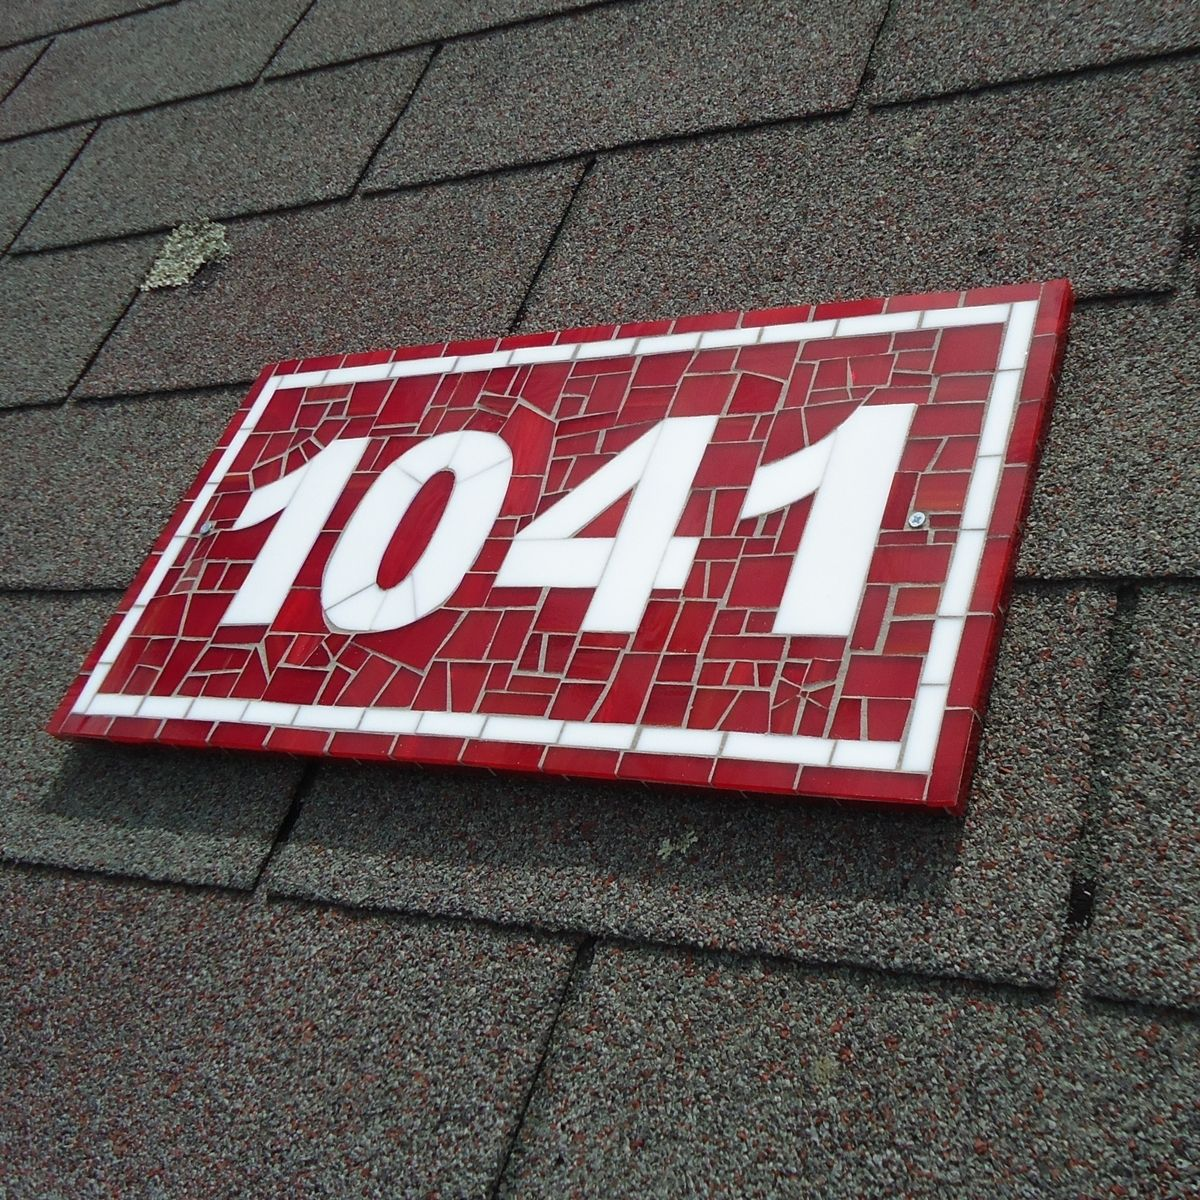 Buy A Hand Made Red And White Custom Mosaic Stained Glass Tile House Number Plaque For Outdoor